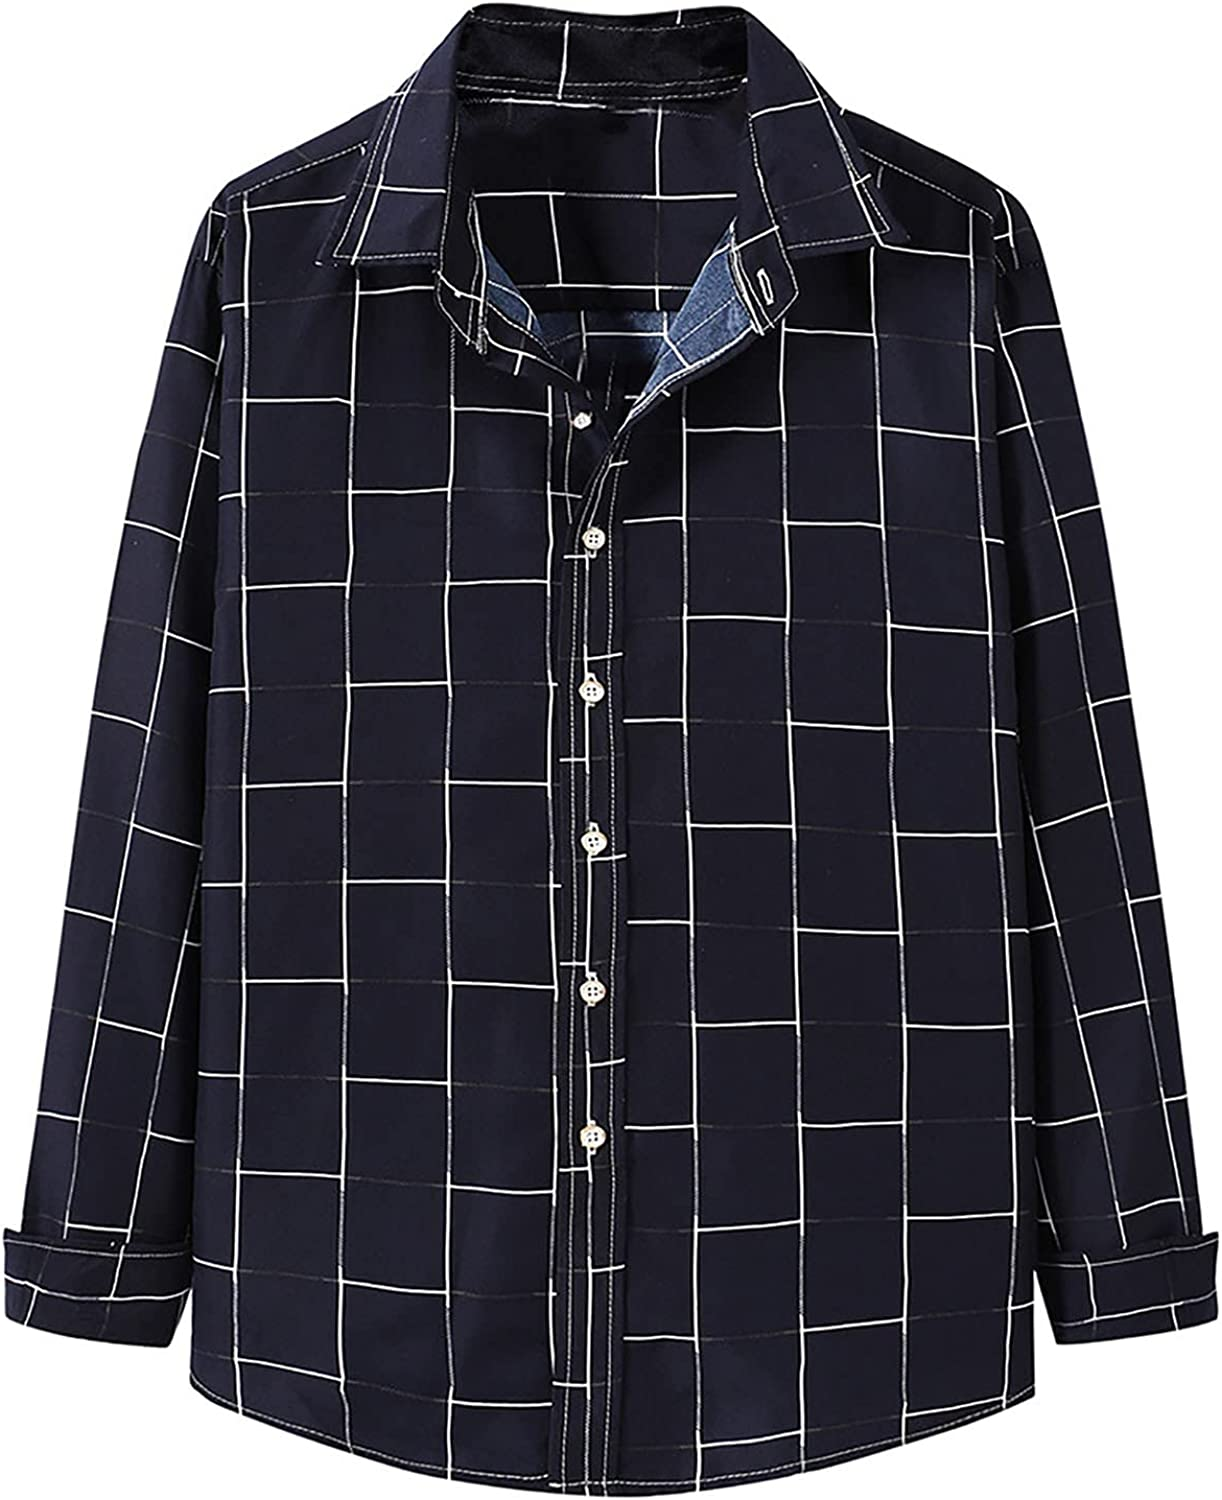 Dry Fit Button Down Shirts for Men - Performance Slim Fit Casual Striped Shirts